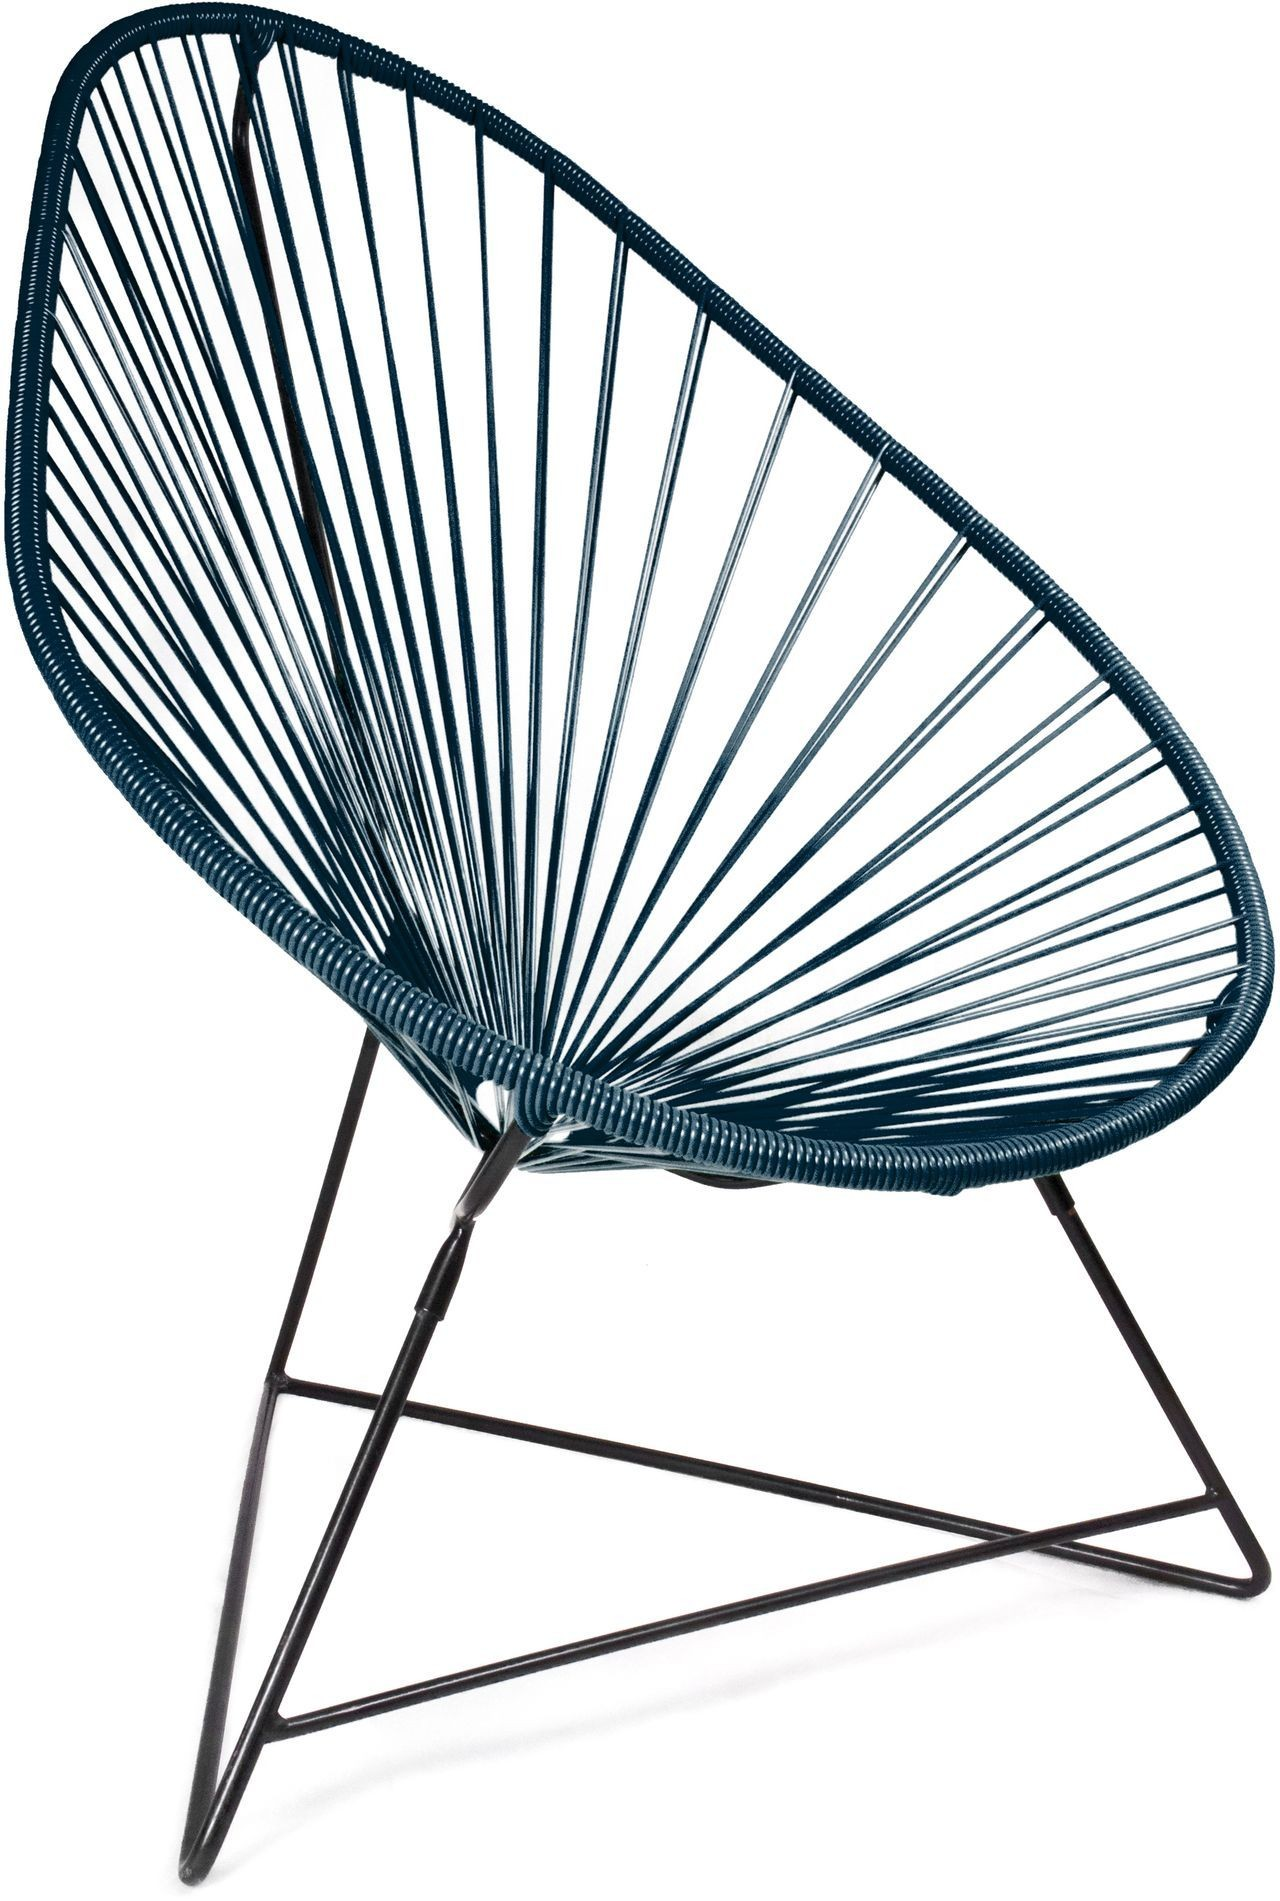 Design Sessel Boqa Acapulco Chair Design Sessel Schwarz Petrol